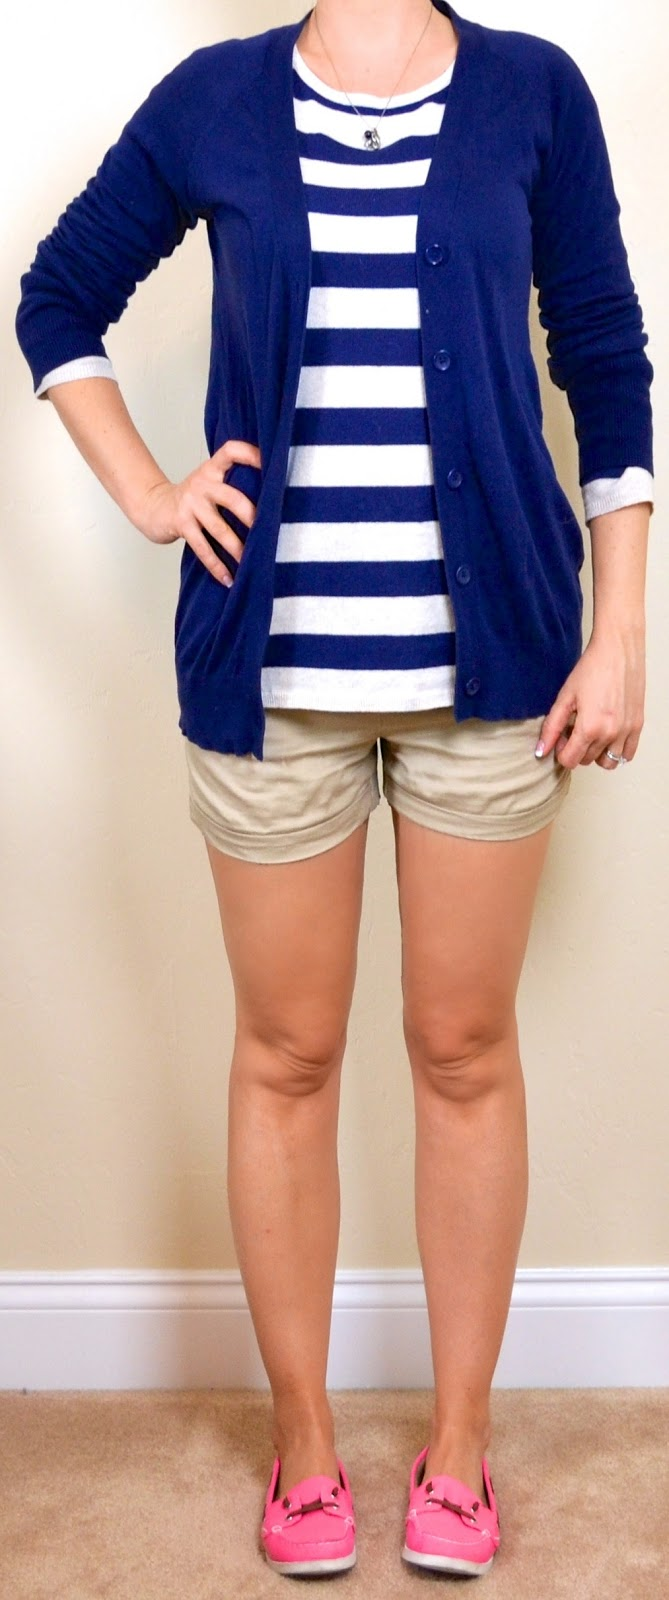 Outfit post striped sweater khaki shorts navy boyfriend cardigan pink boat shoes | Outfit Posts